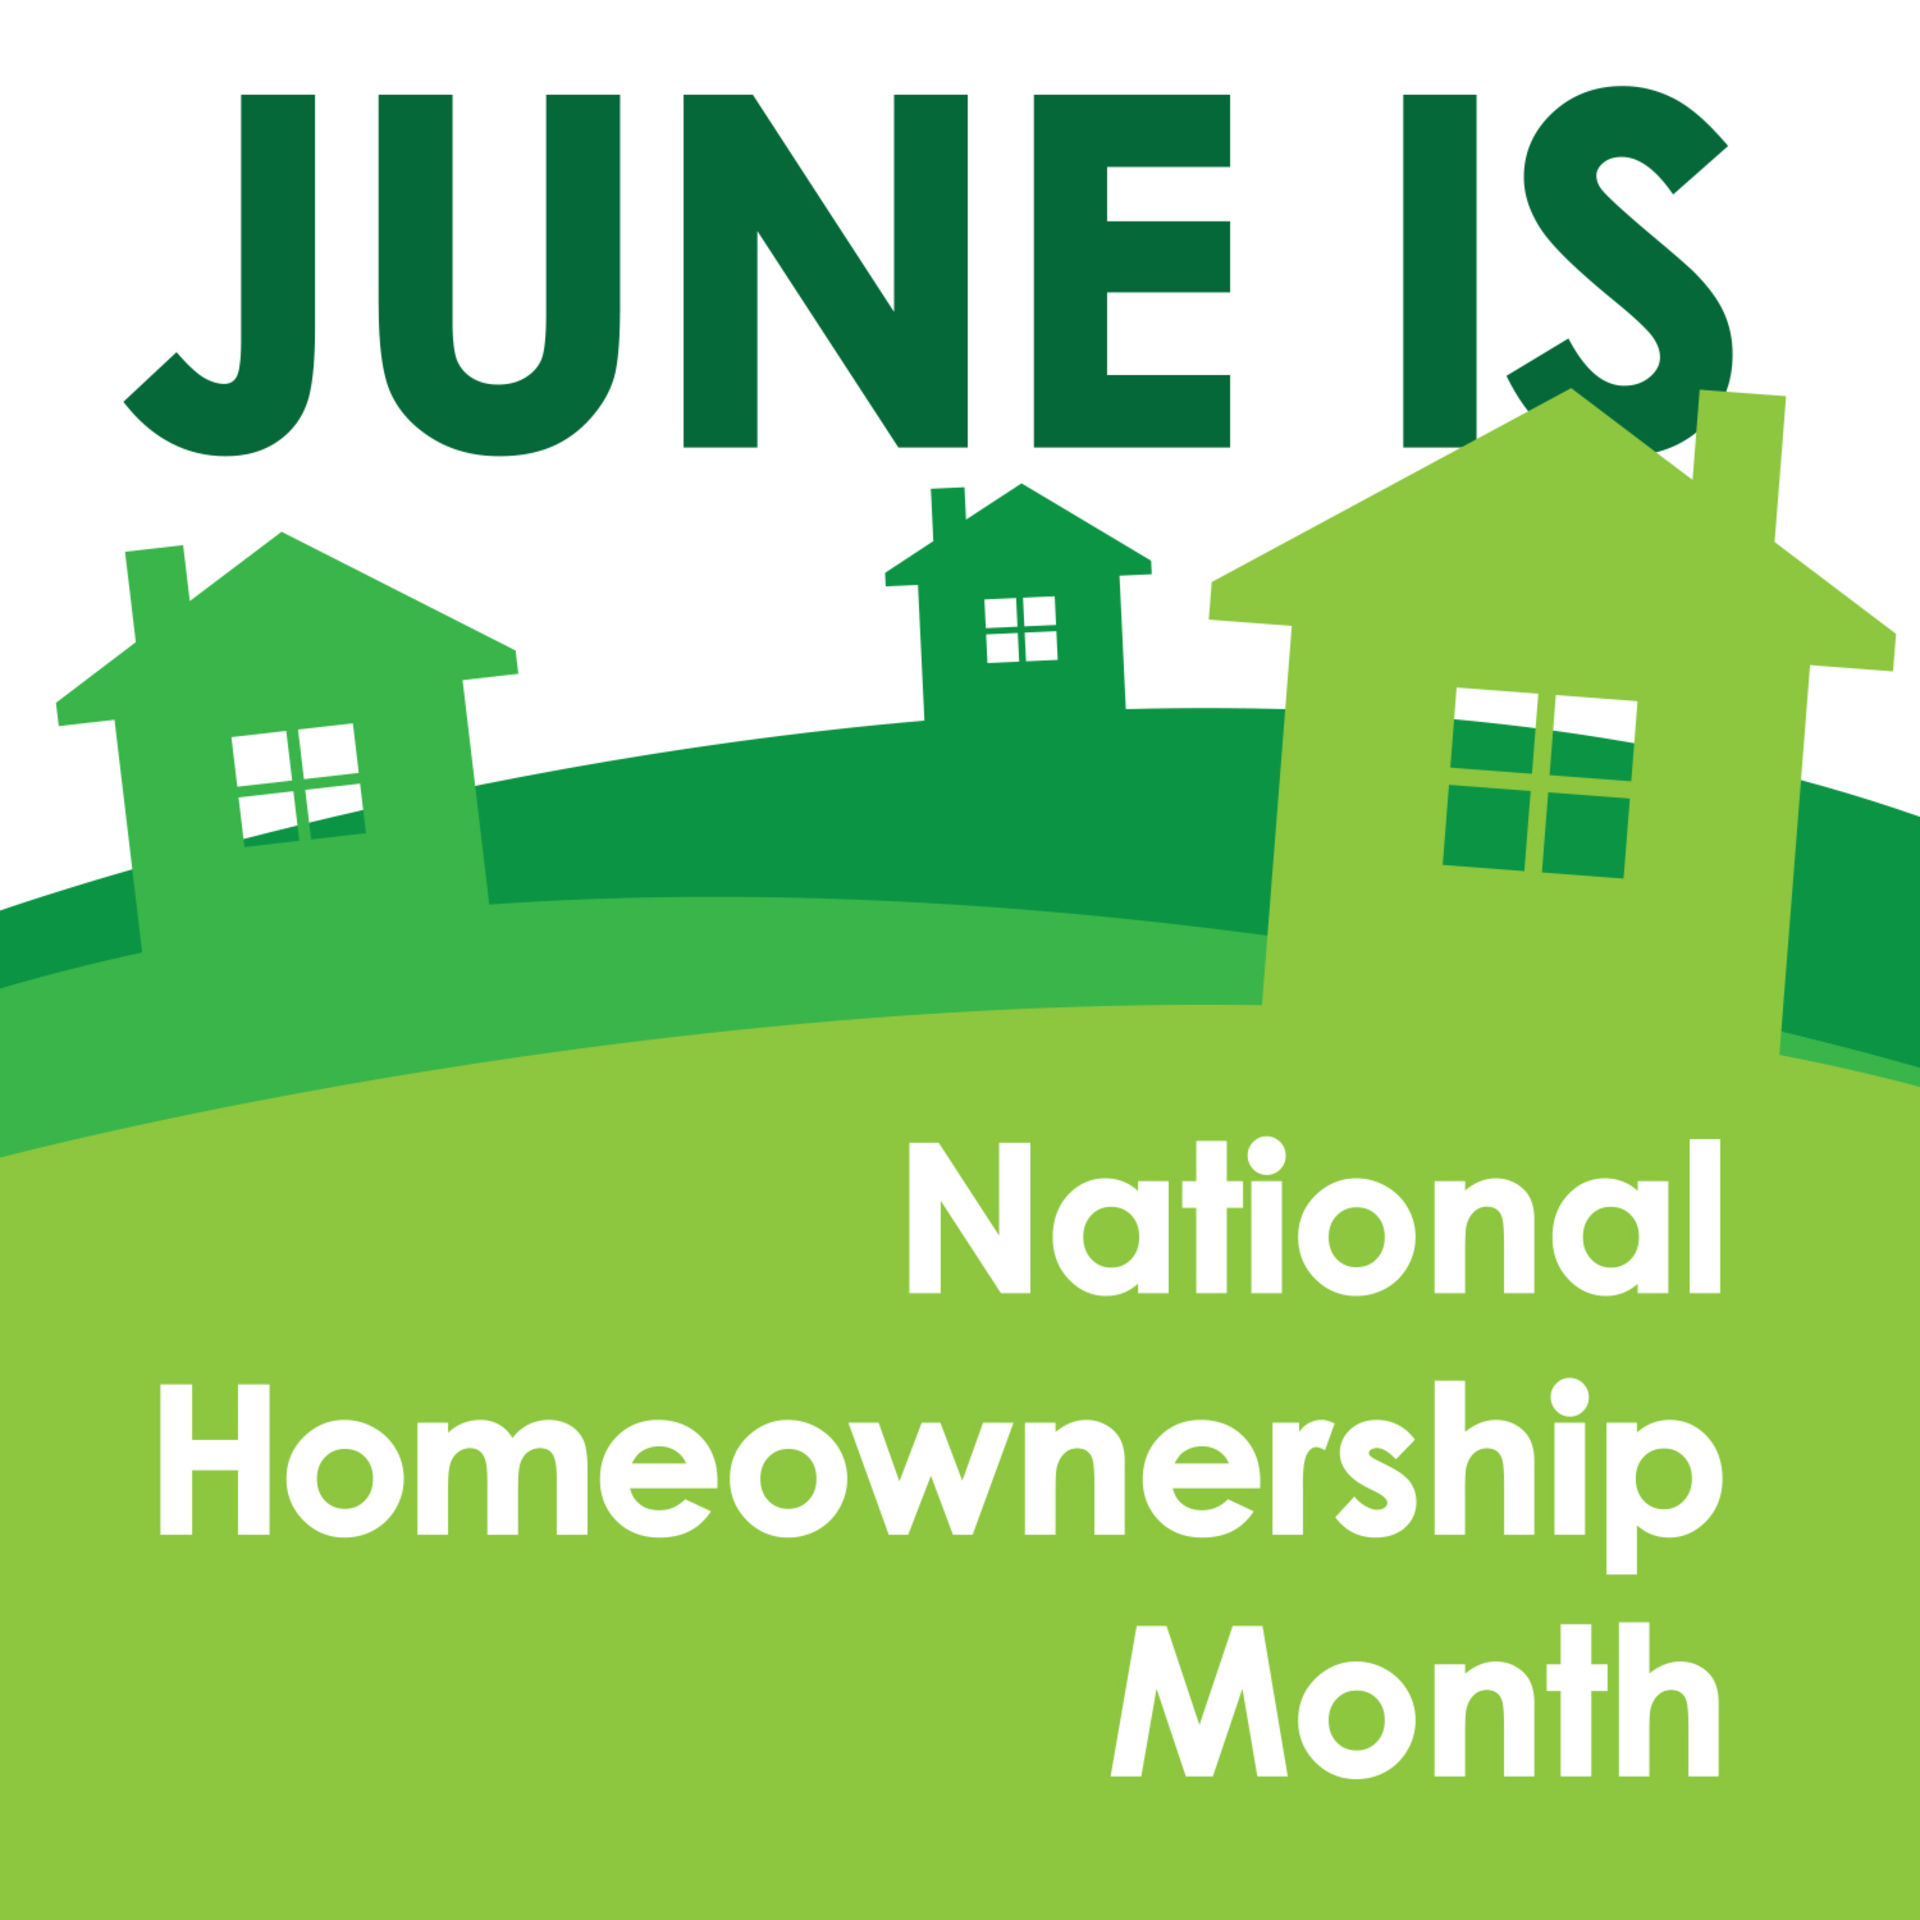 National Homeownership Month!